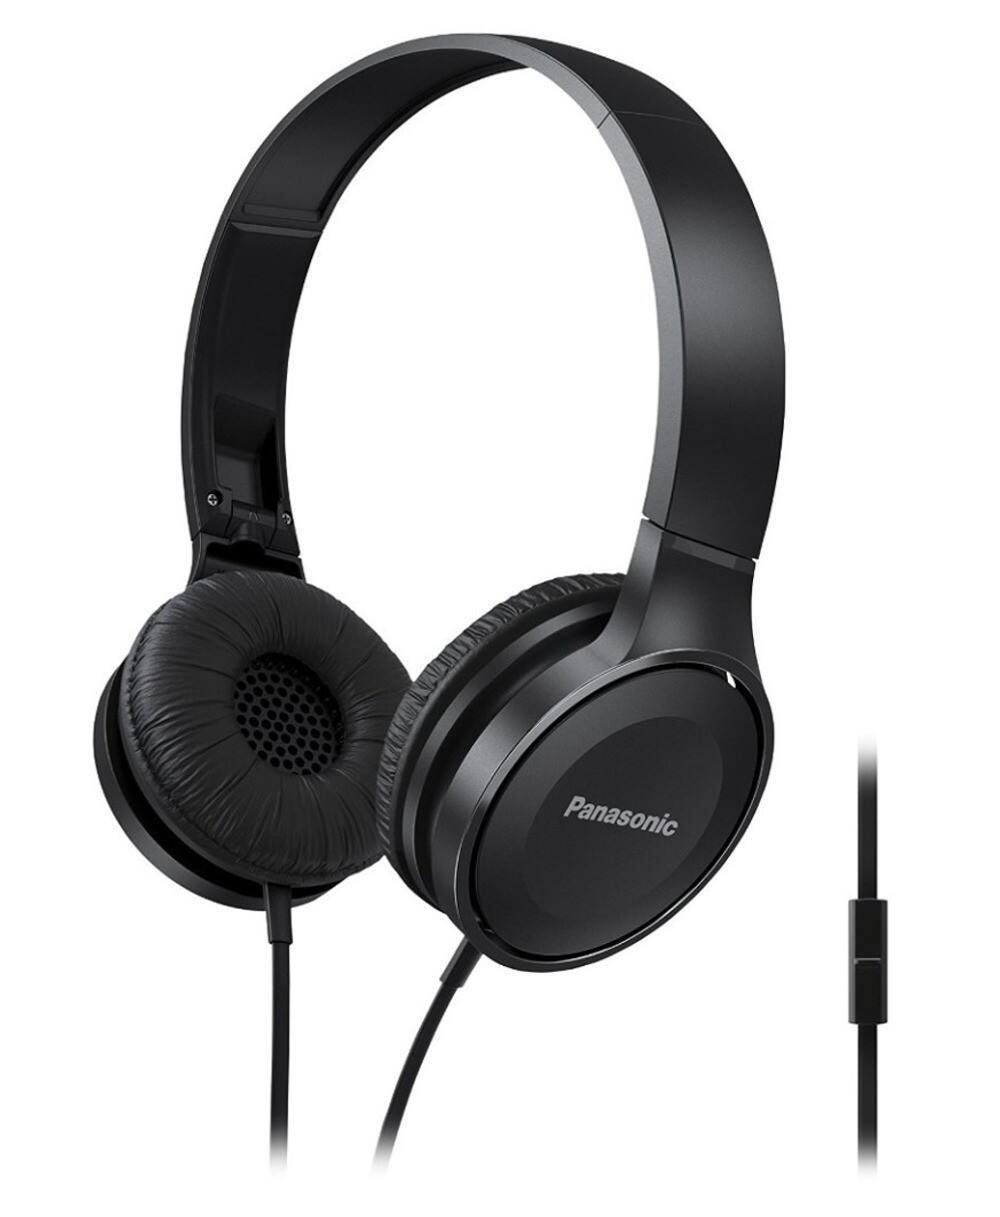 Panasonic On-Ear Stereo Headphones with Mic and Controller $9.99 Shipped